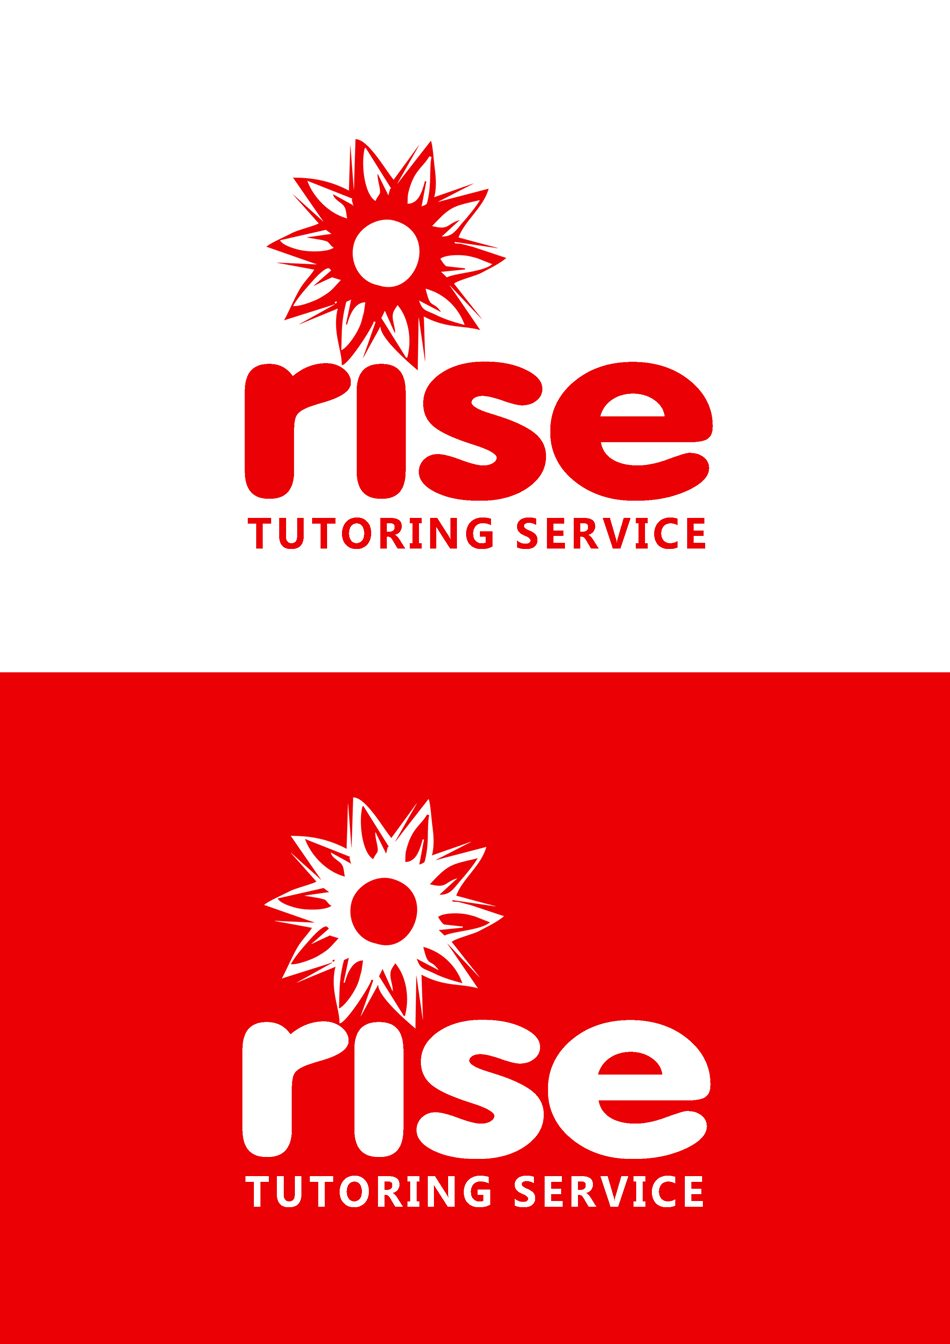 Logo Design by Respati Himawan - Entry No. 214 in the Logo Design Contest Imaginative Logo Design for Rise Tutoring Service.